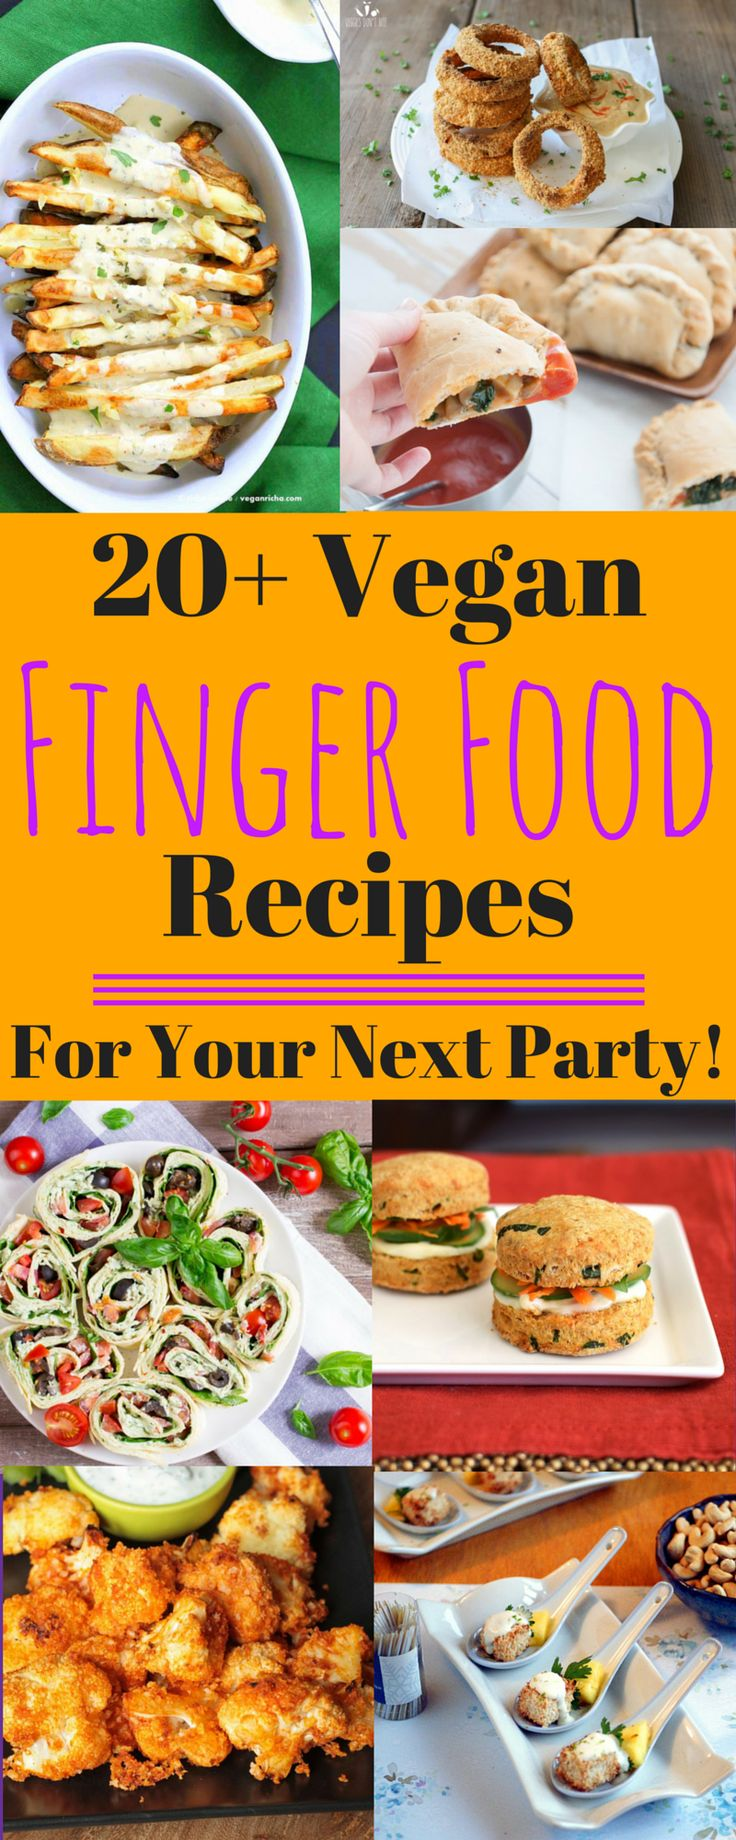 20+ Vegan Finger Food Recipes for your next party! | VeganFamilyRecipes.com | #appetizer #snacks